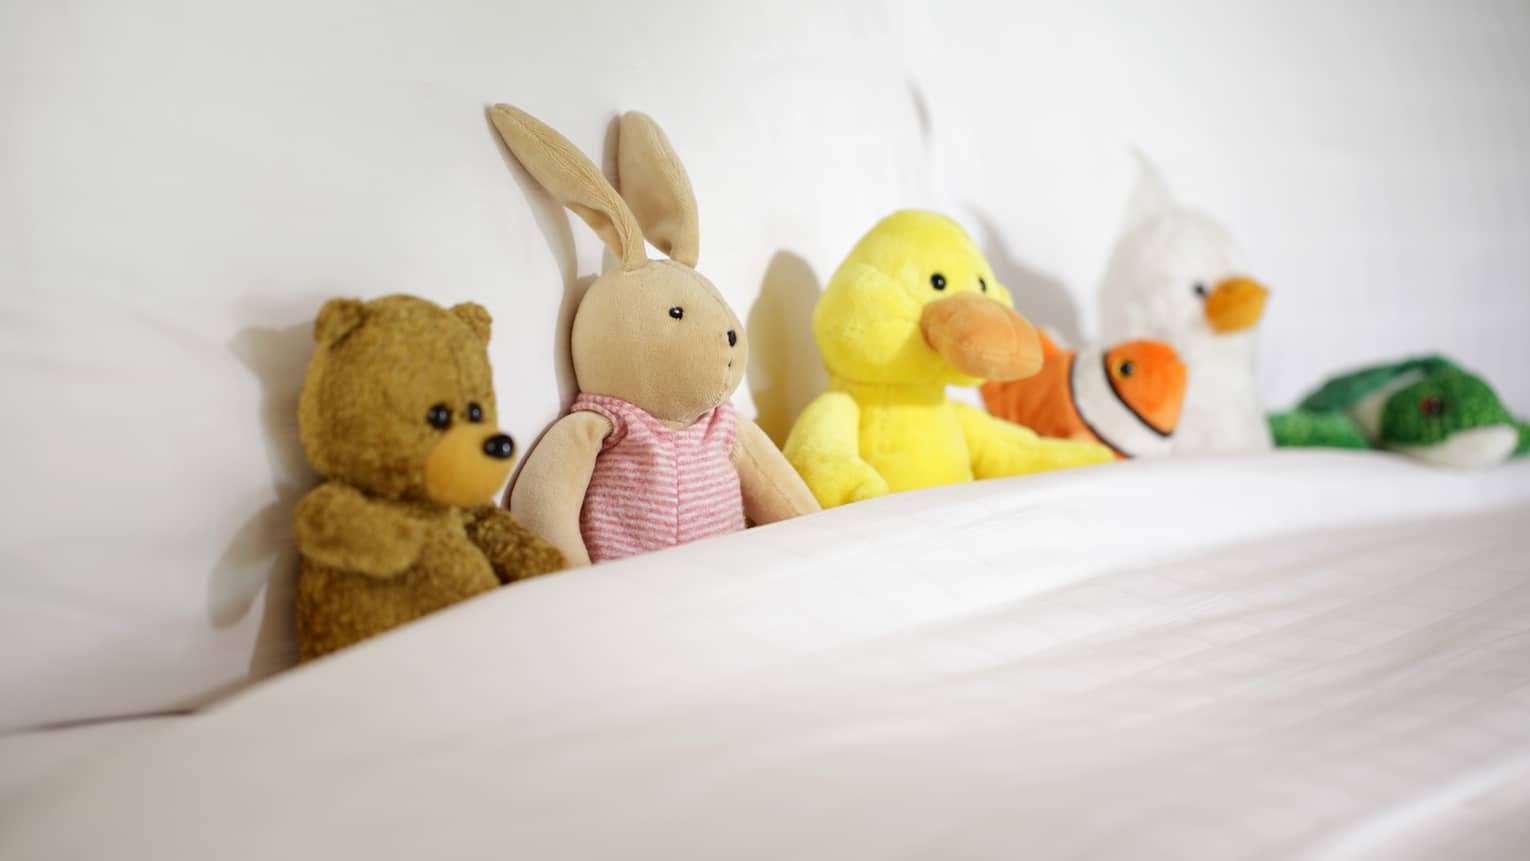 Stuffed bear, bunny and ducks tucked into hotel bed blanket against pillow